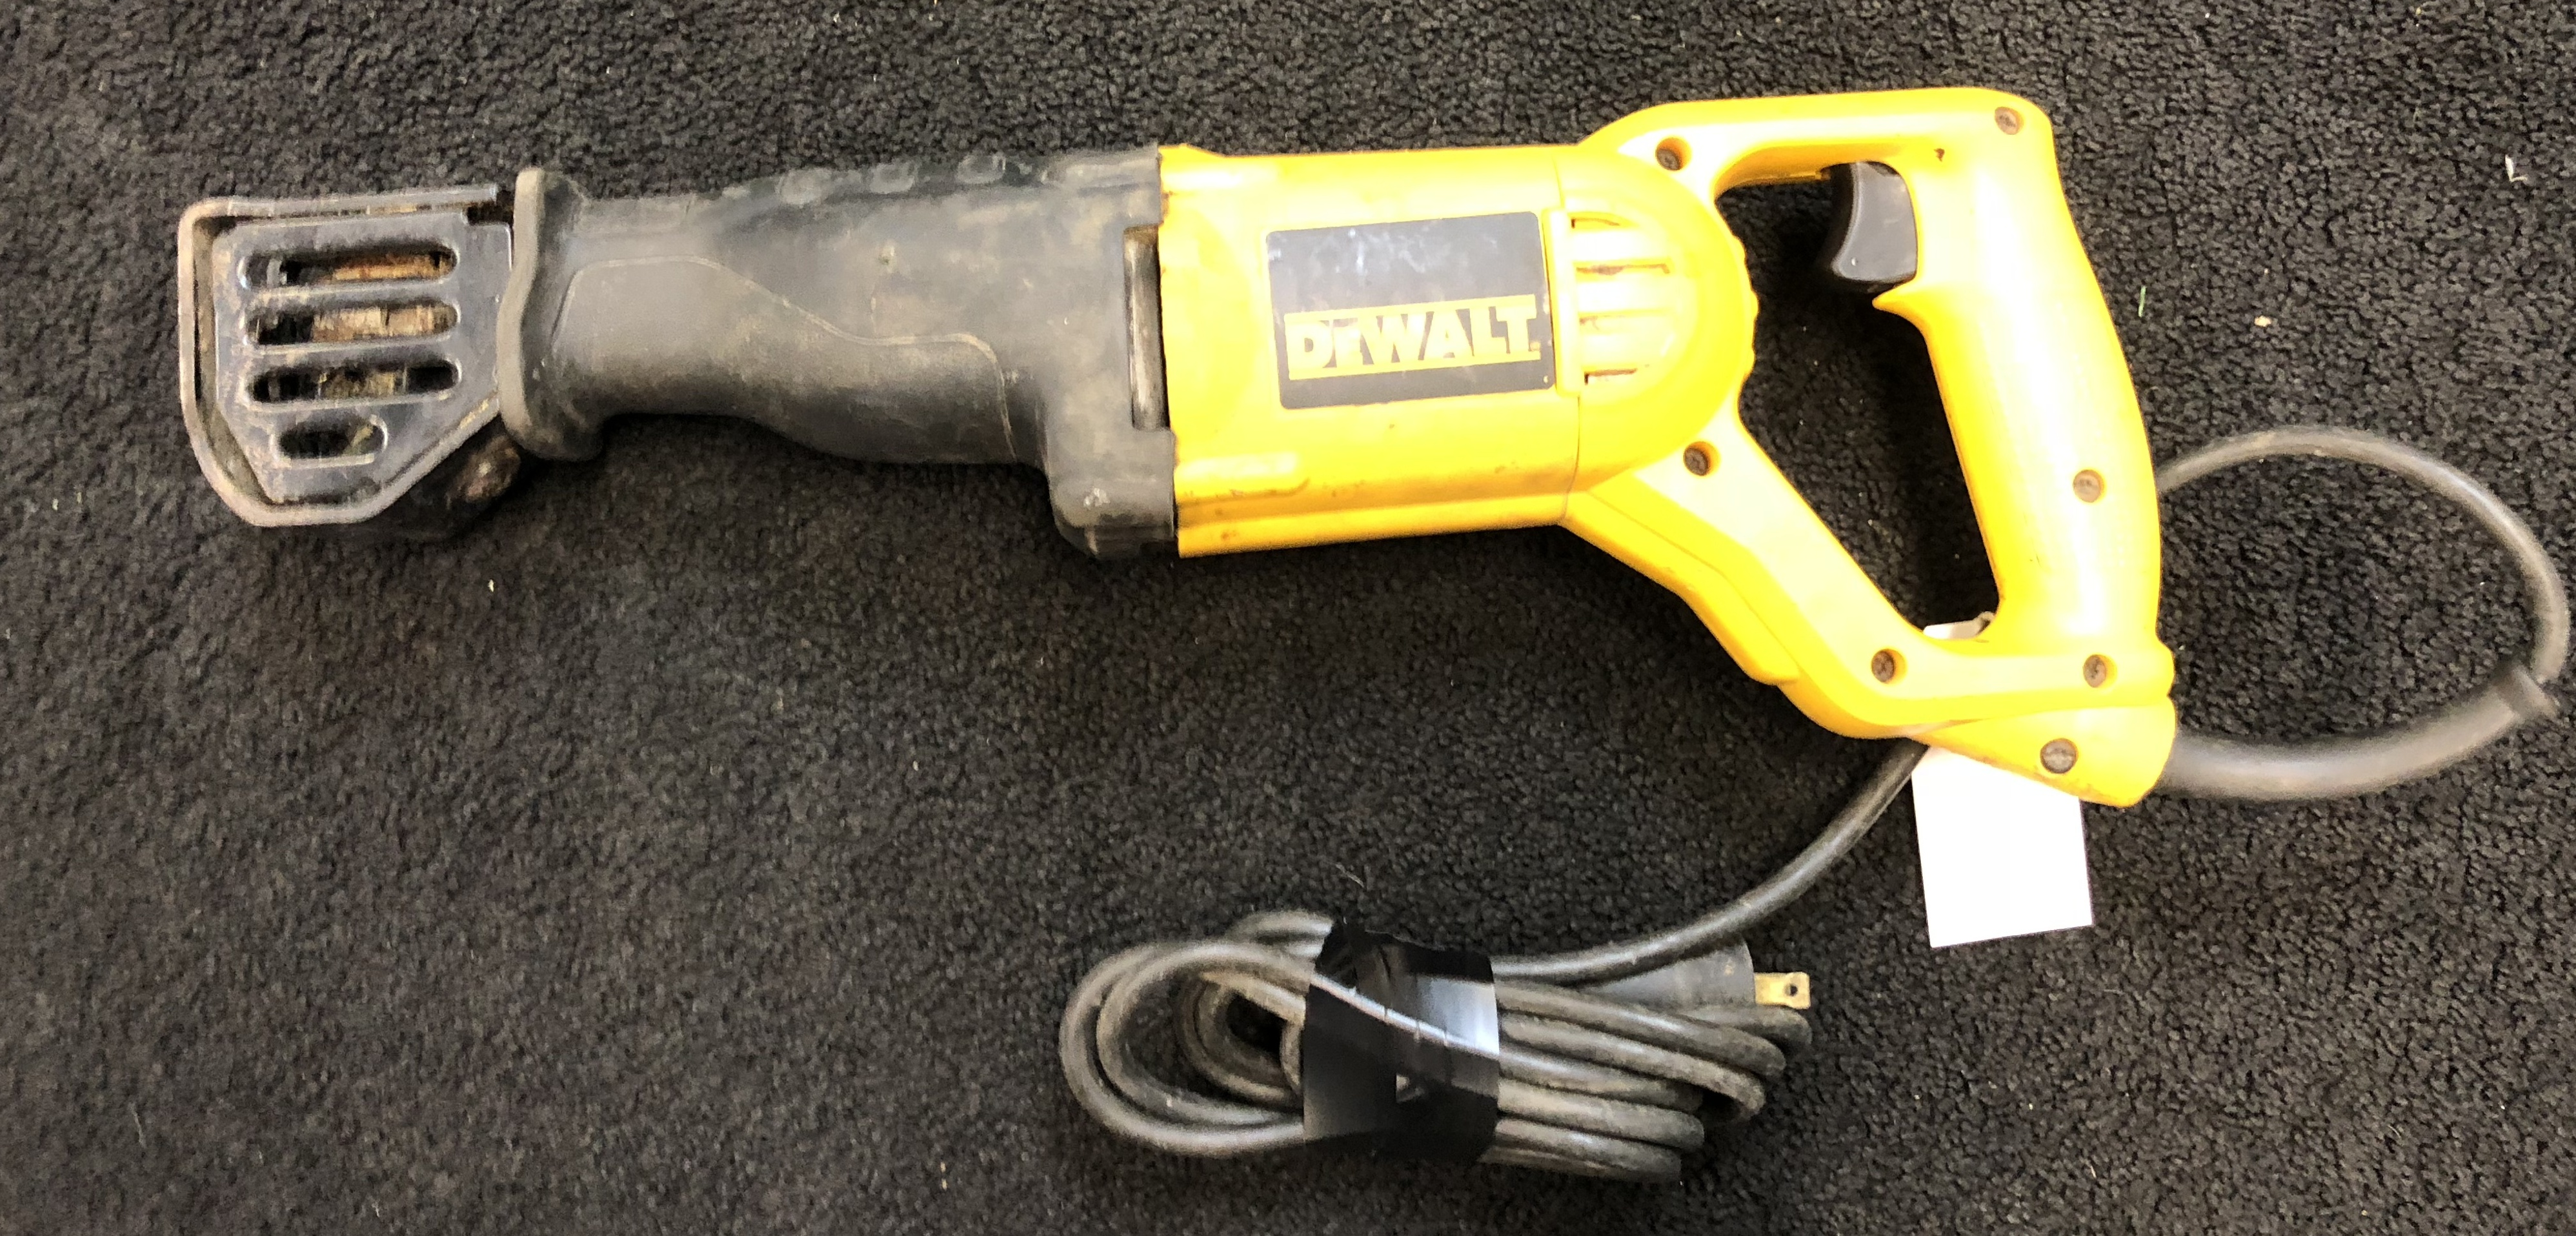 DEWALT DW304P QUICK RELEASE RECIPROCATING SAW